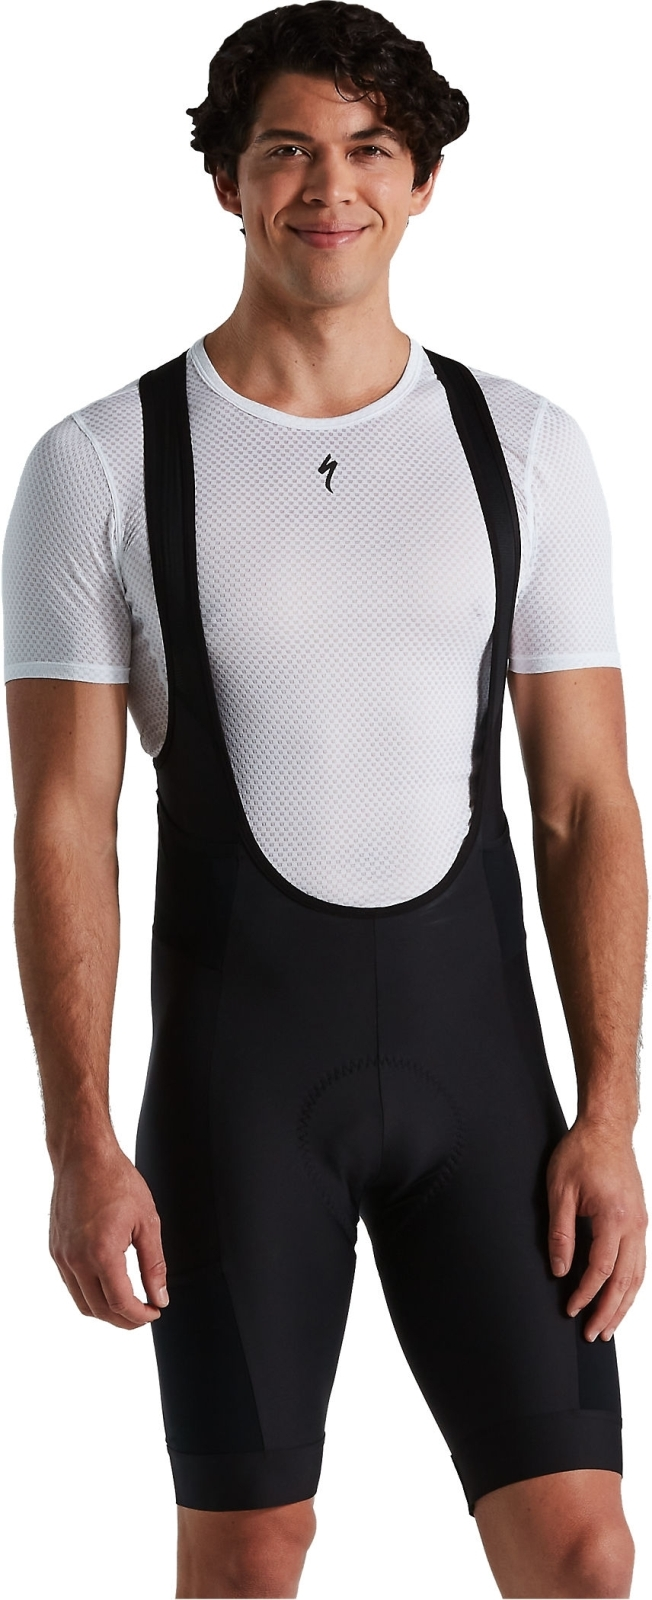 Specialized Rbx Adv Bib Short W/Swat Men - black S